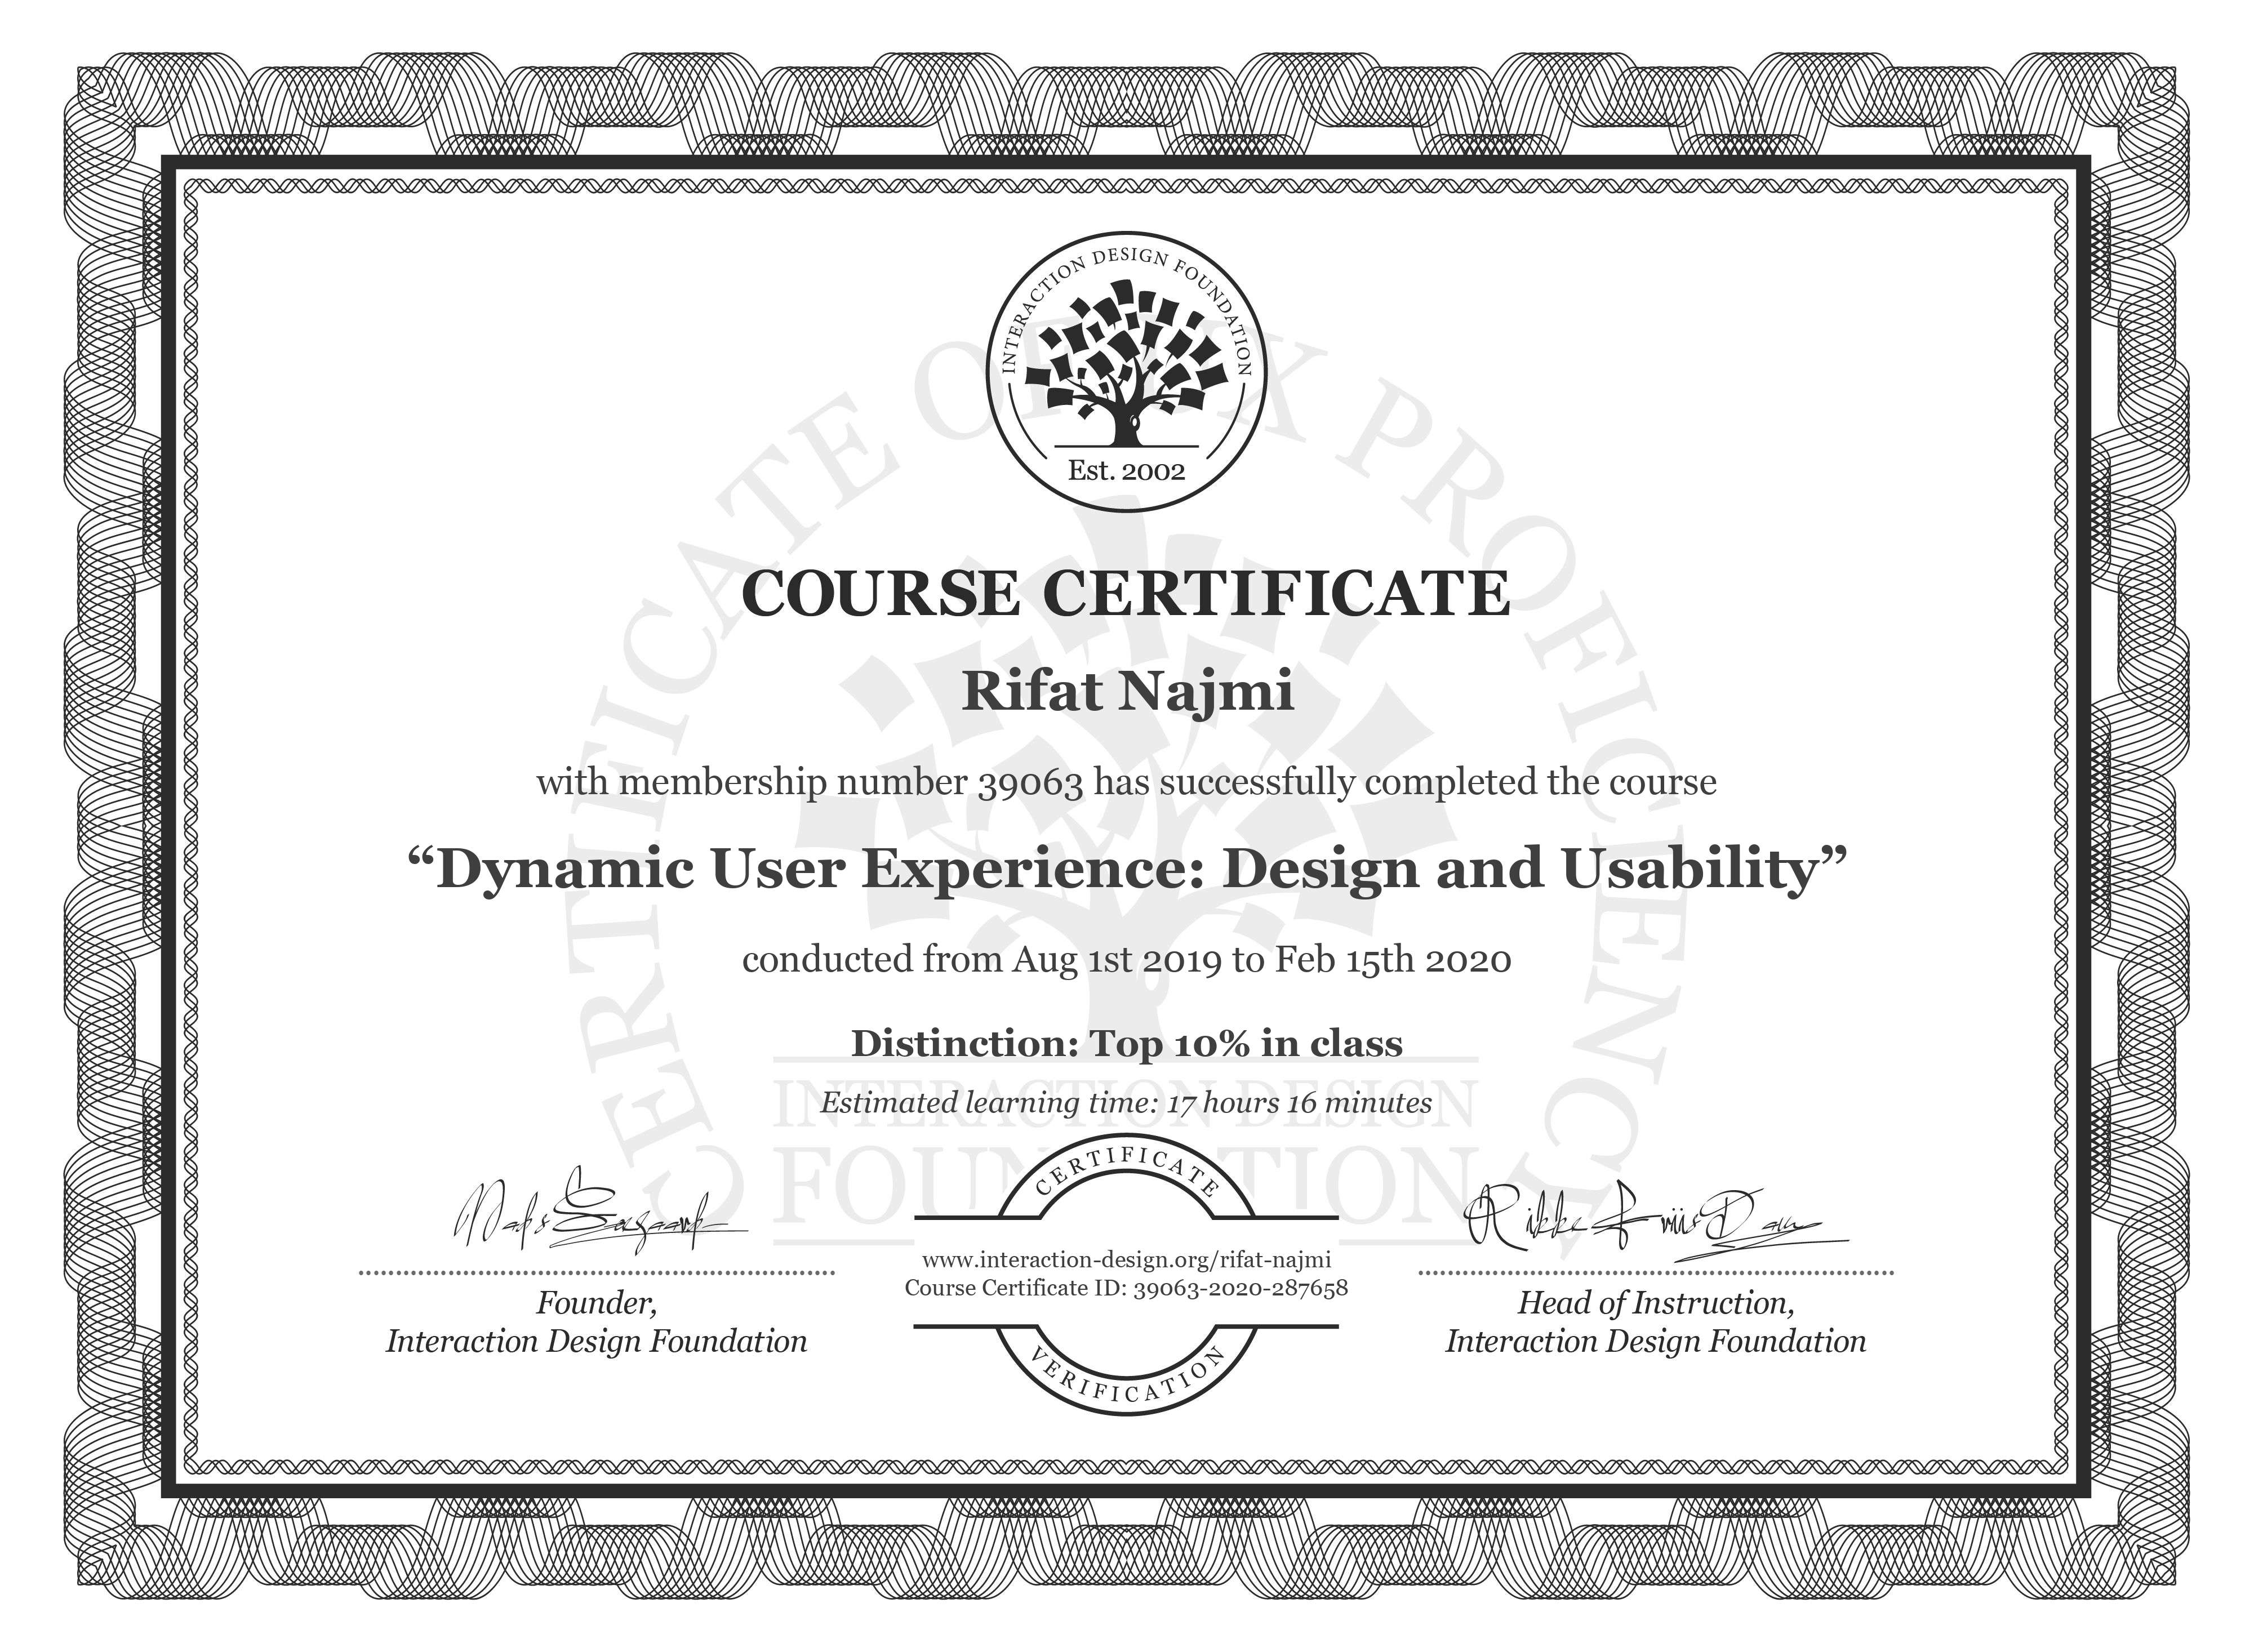 Rifat Najmi's Course Certificate: Dynamic User Experience: Design and Usability